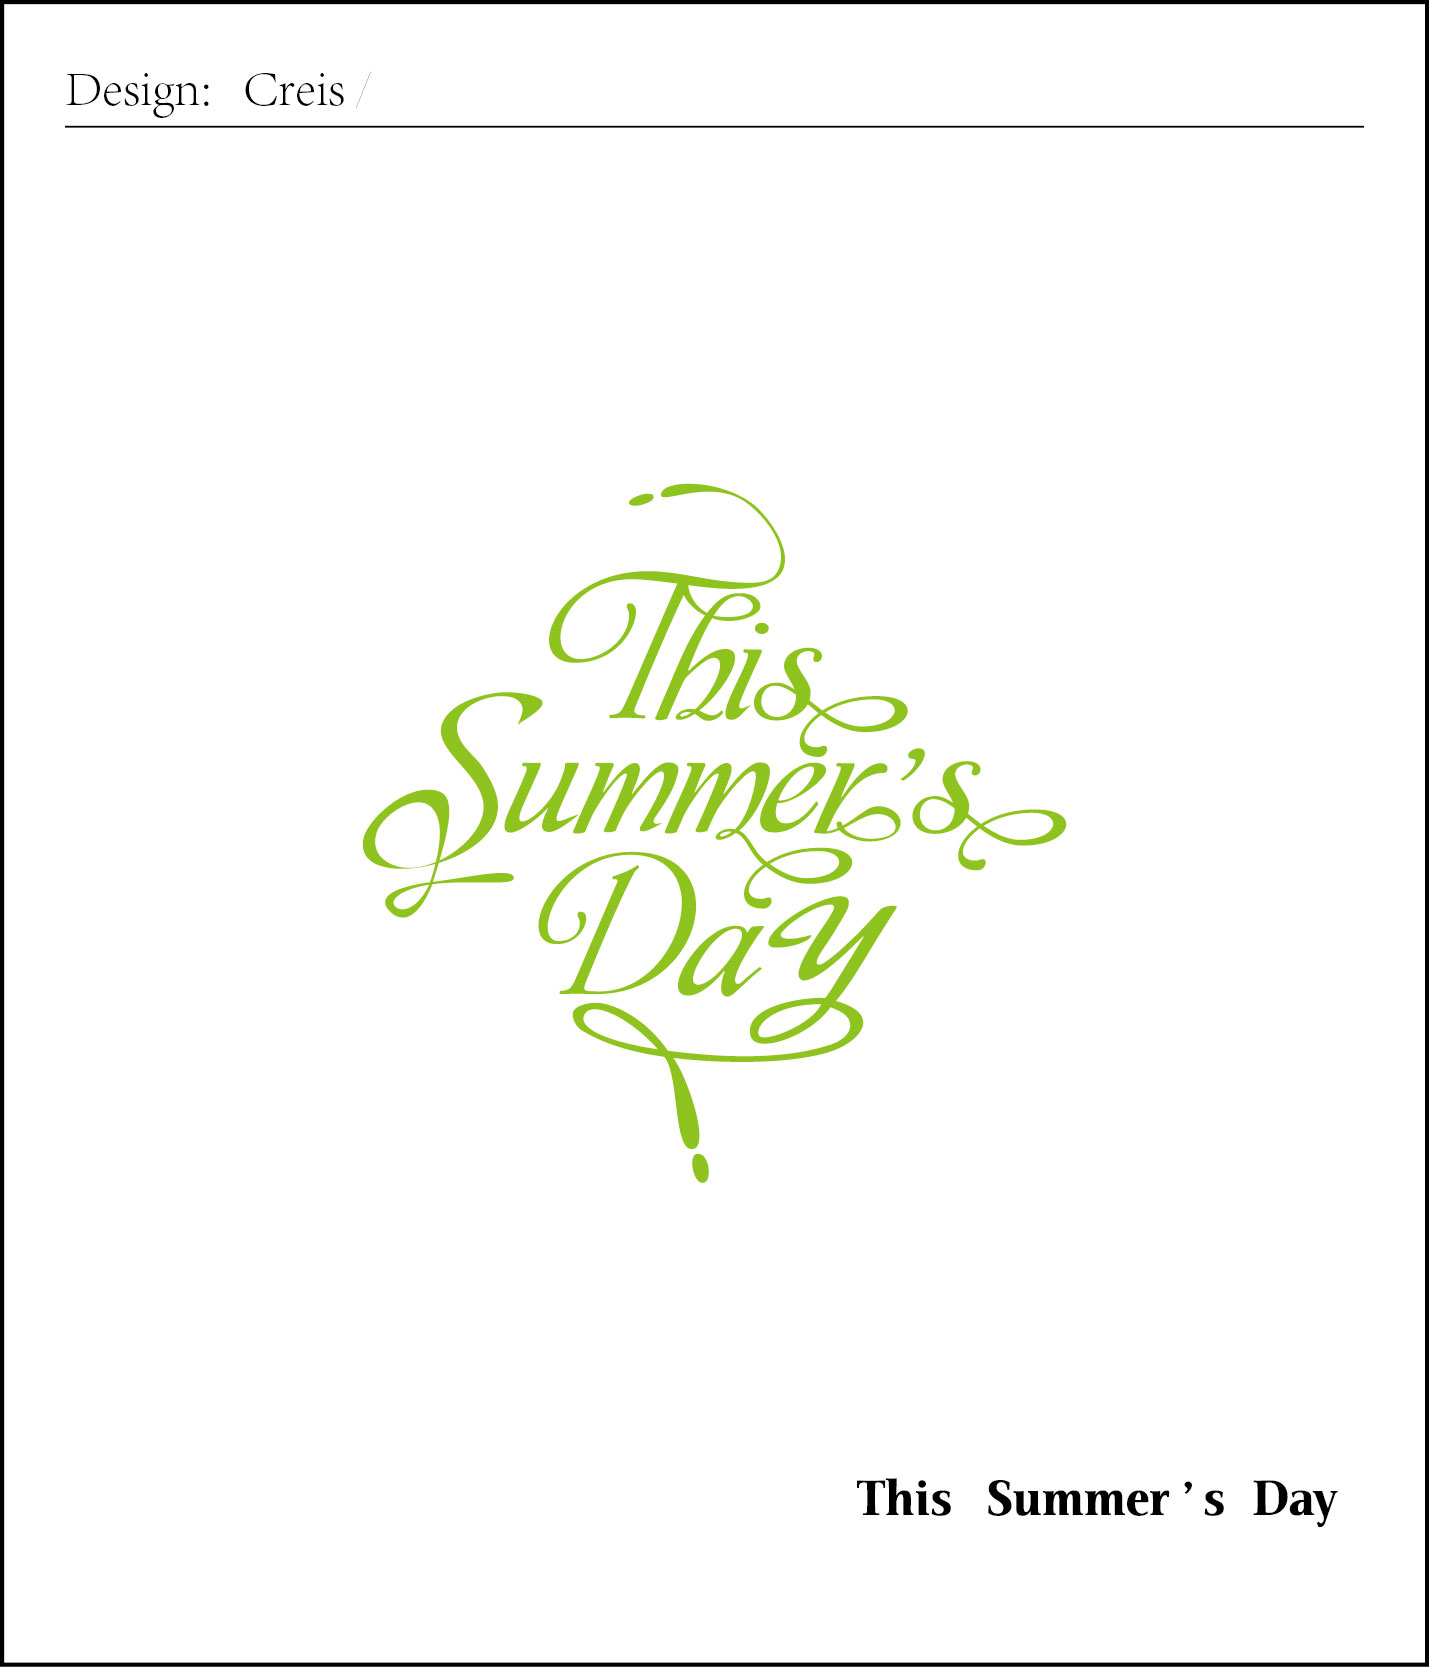 this summer's day 字体设计